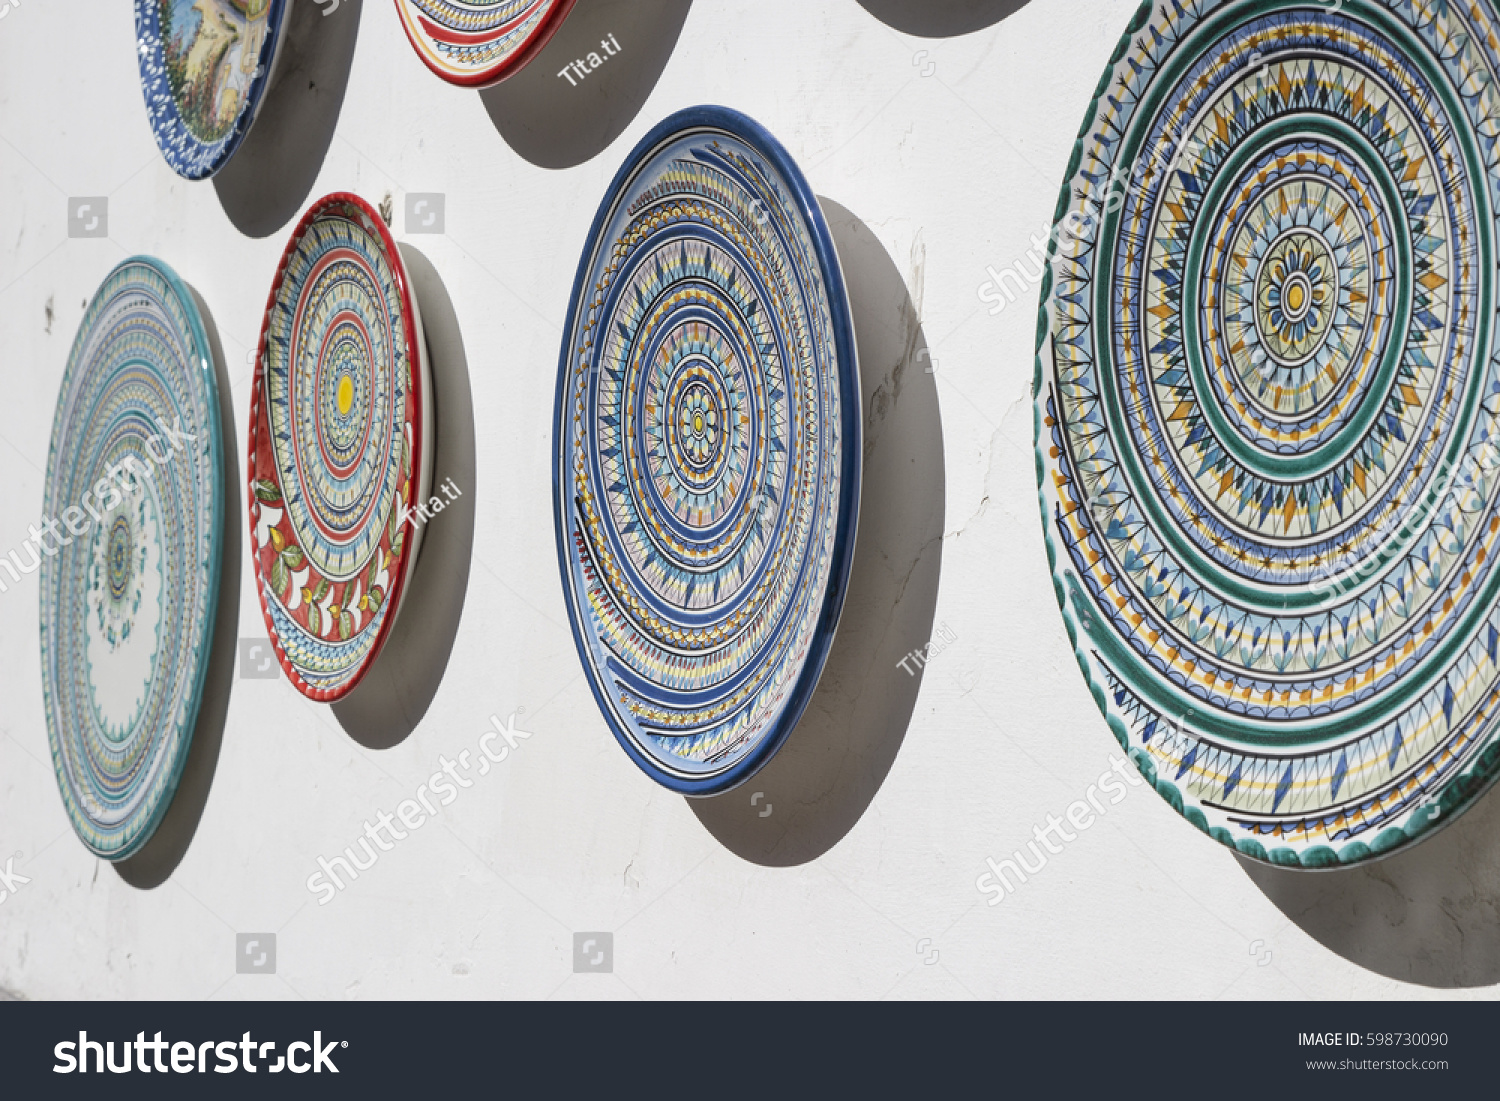 Vietri pottery sale - Various Decorated Pottery Dishes Hung For Sale Outside A Souvenir Shop In Vietri Sul Mare